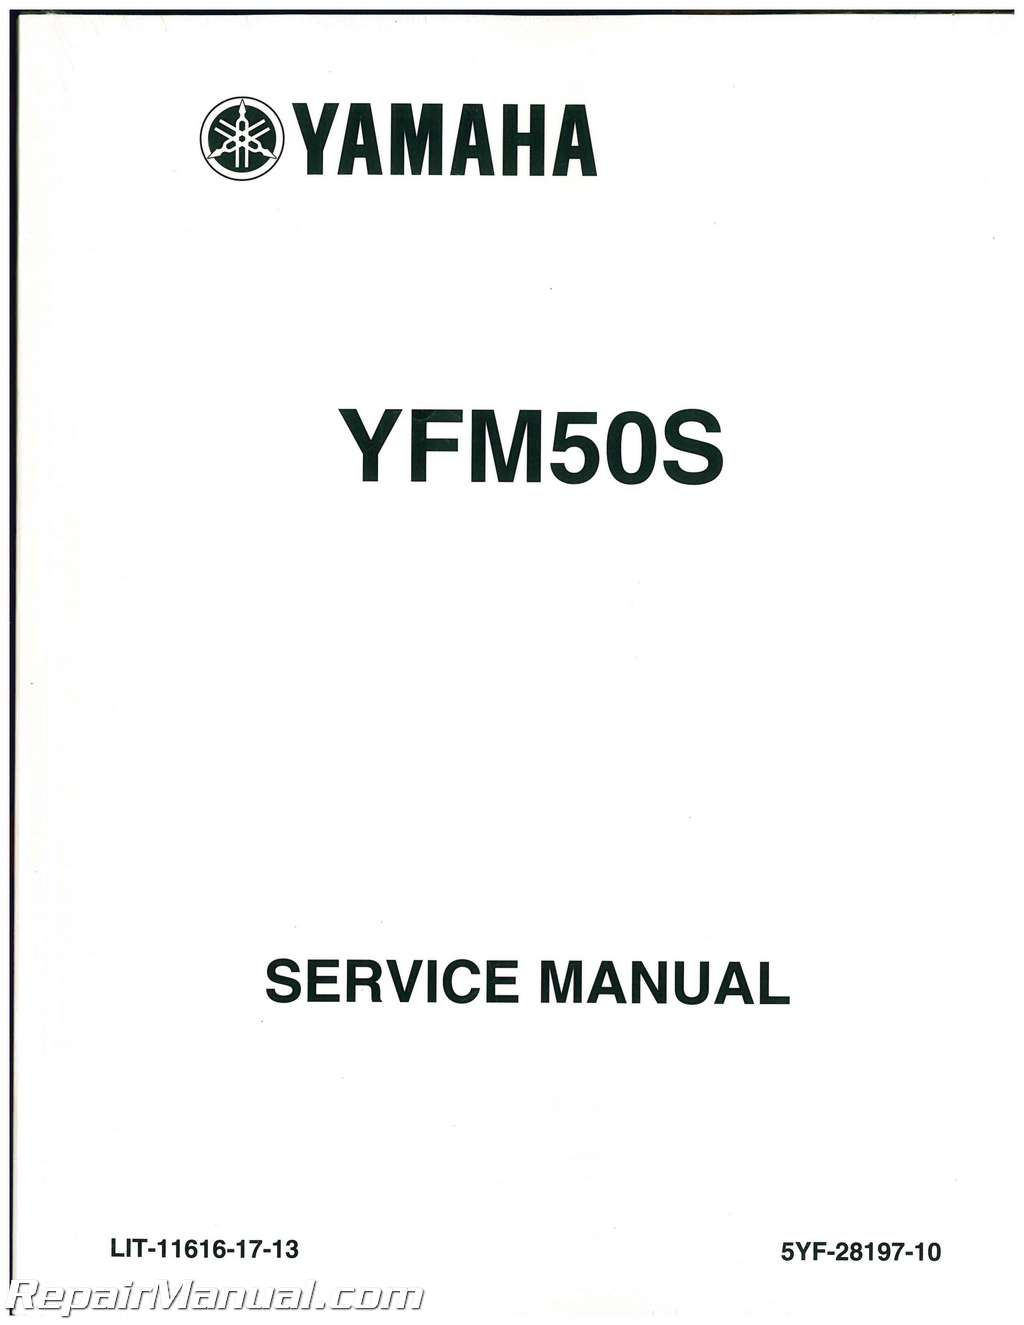 Yamaha Yfm50 Atv Raptor Service Manual